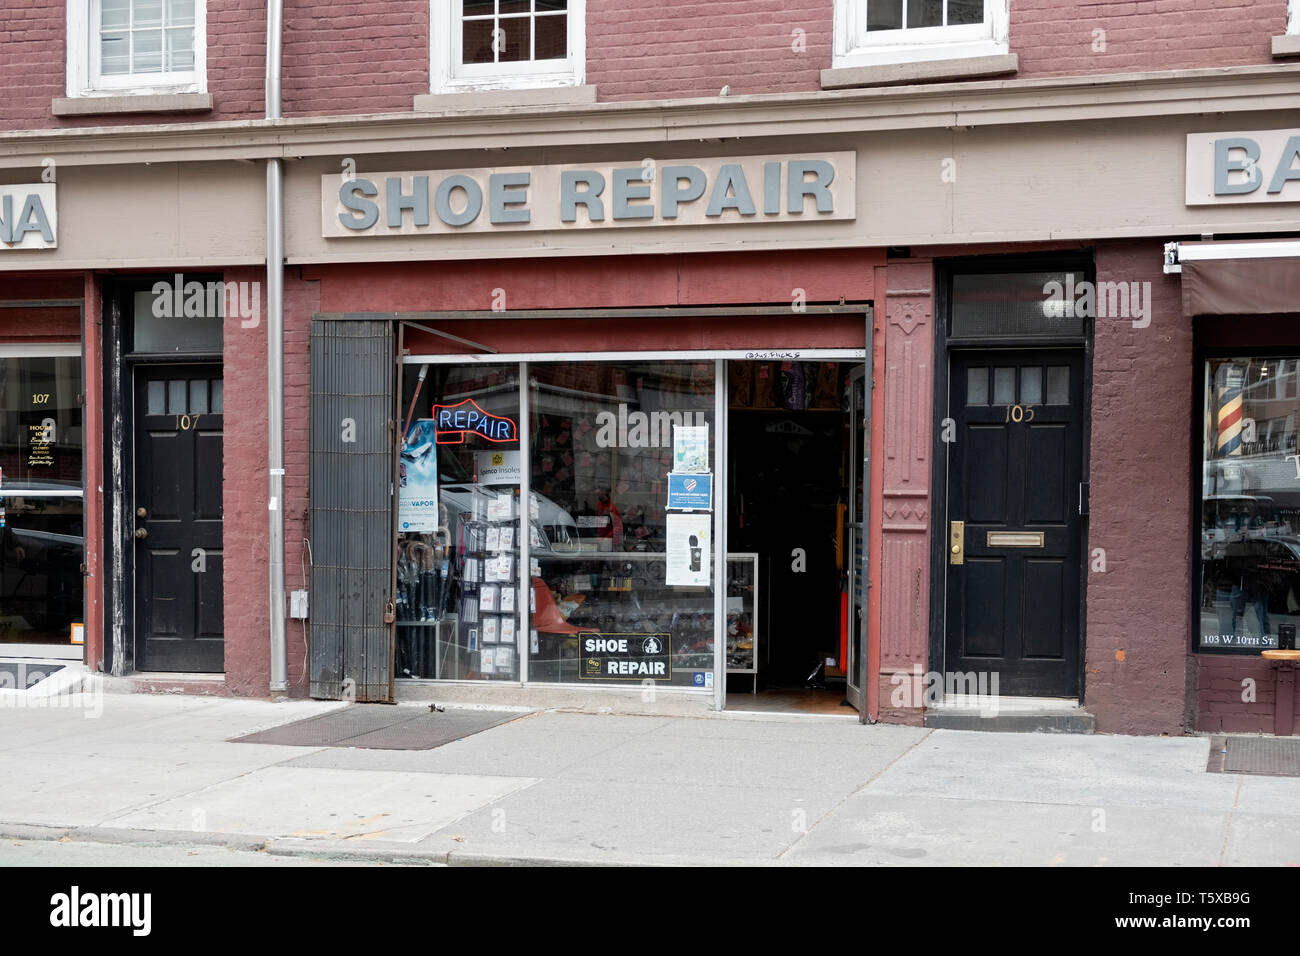 The exterior of a SHOE REPAIR store on West 10th Street in the West Village, downtown Manhattan, New York City. Stock Photo